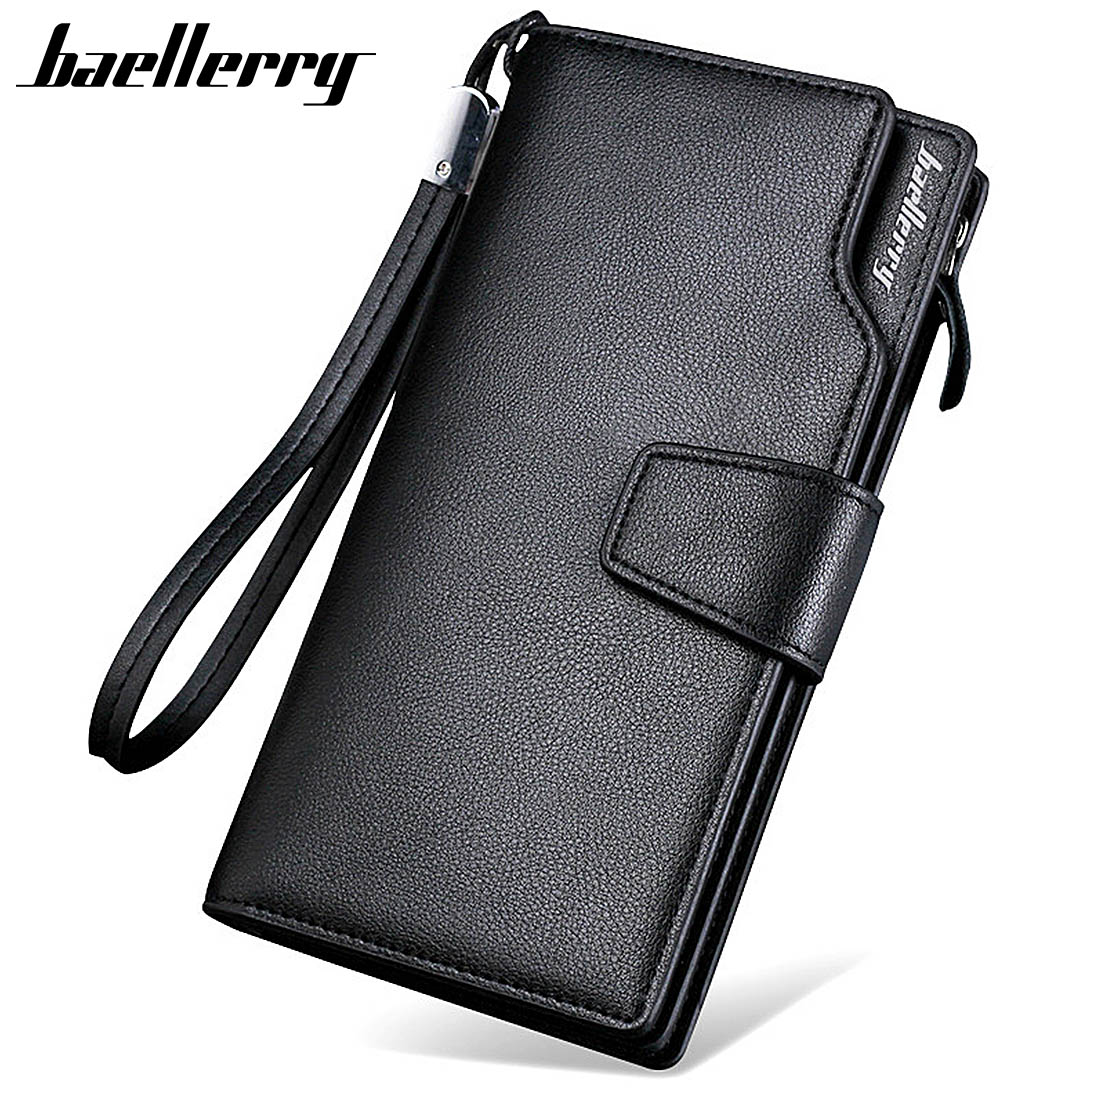 Top Quality Leather Wallet Fashion Casual Long Design Mens Bag Double Zipper Multi-function Hand Bag 7X hdmi extender rj45